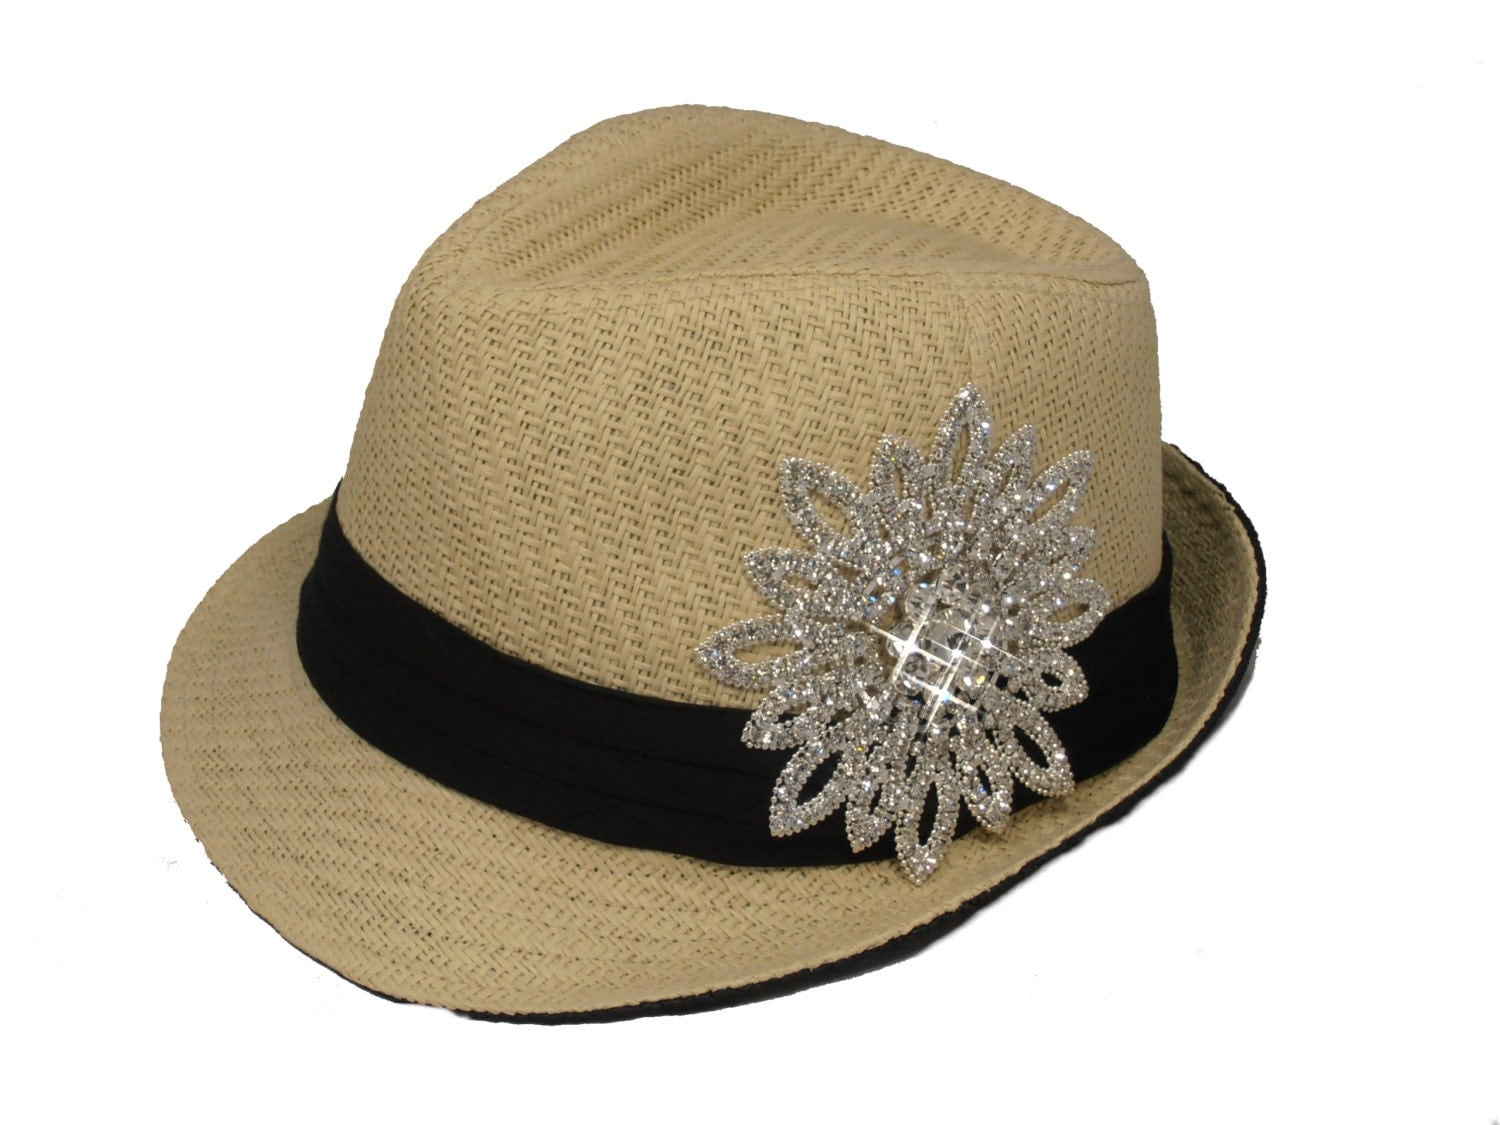 womens bling fedora hat by timetwochange on etsy